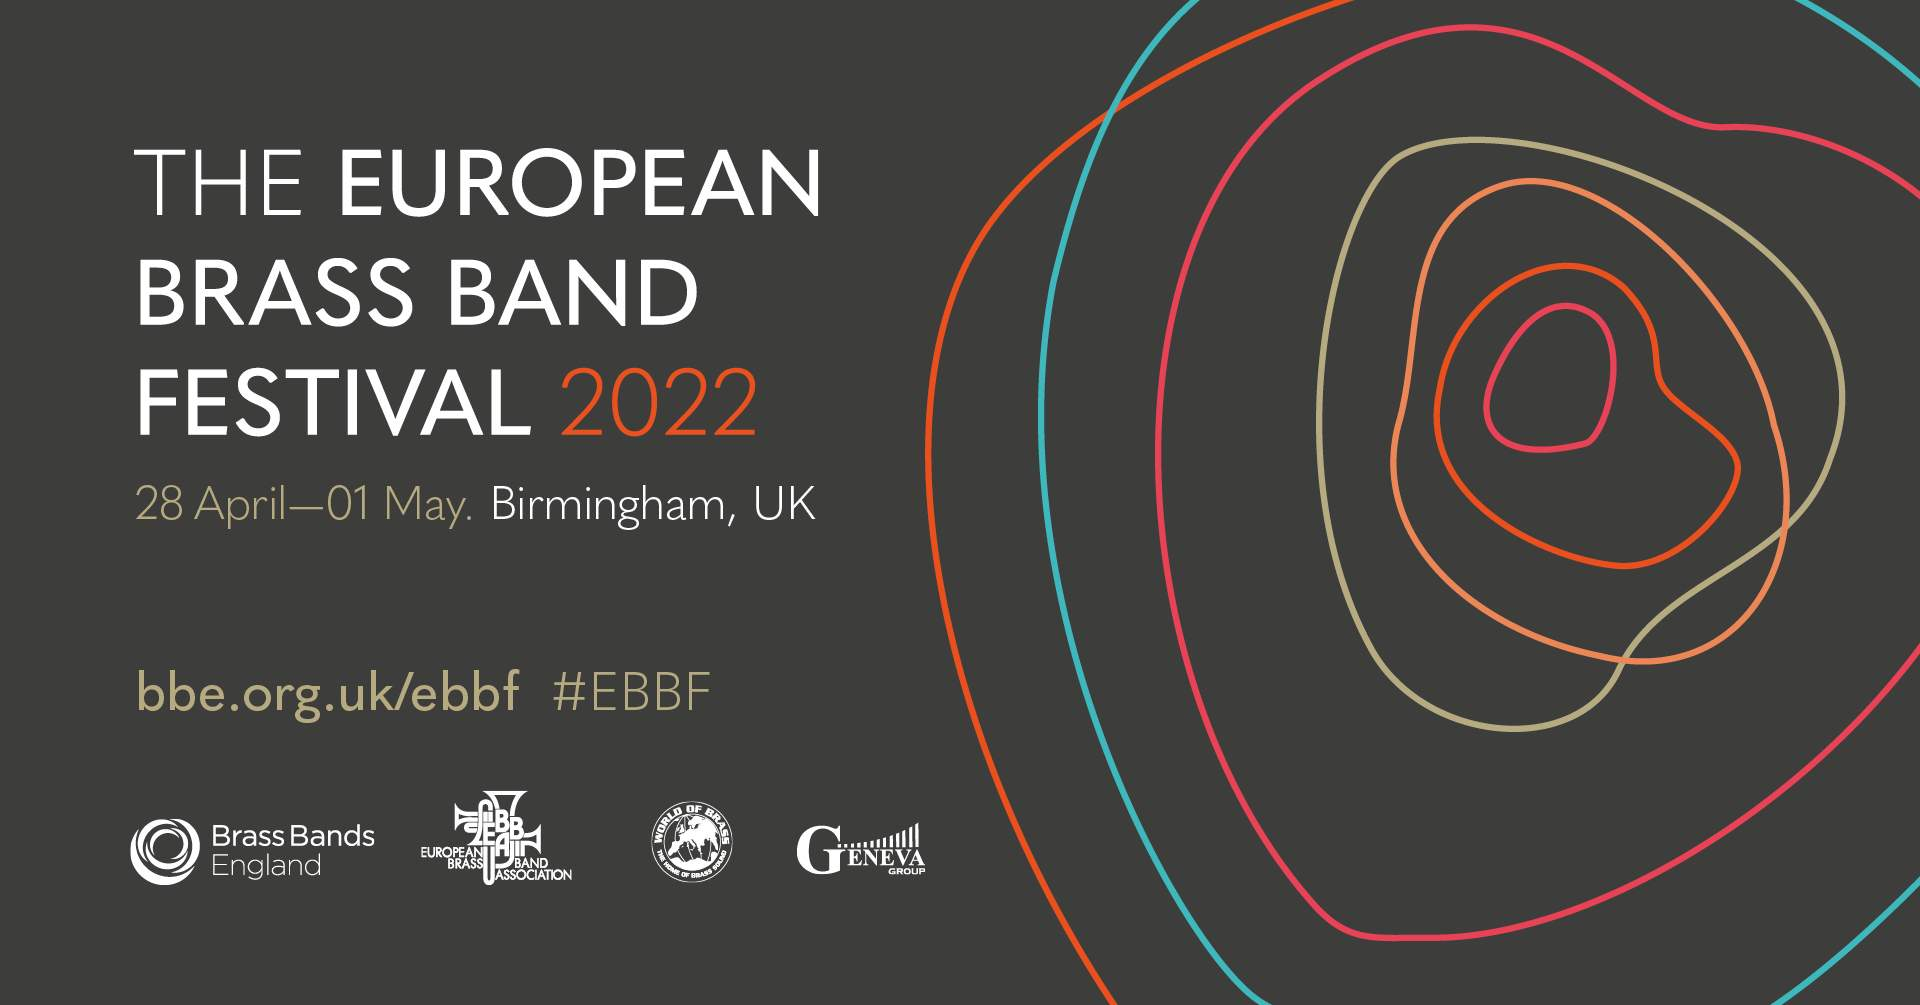 White text reads The European Brass Band Festival 2022, it is overlayed on a grey background with a rose logo made up of different coloured rings. Organiser logos BBE and EBBA, plus sponsors World of Brass and Geneva Group